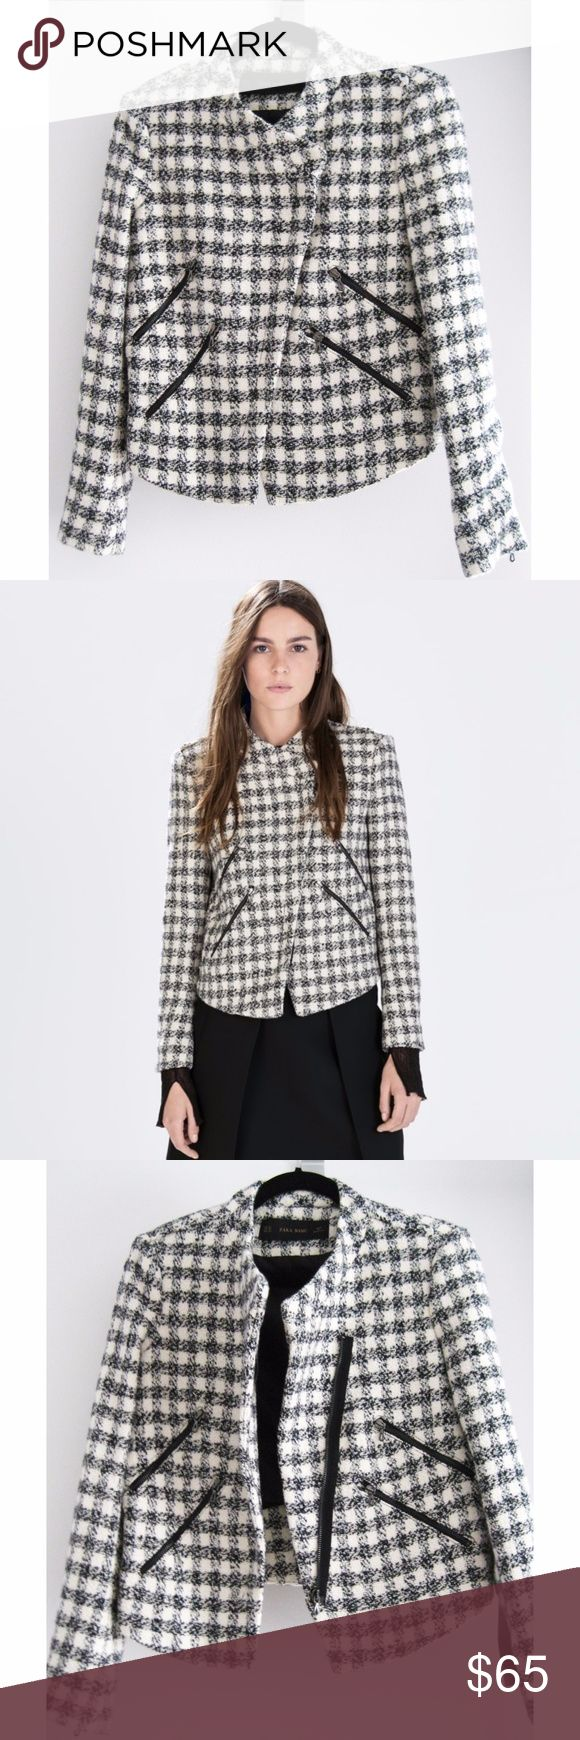 """NWT Zara Tweed Checkered Moto Jacket Sz XS A cozy black and white checkered tweed moto jacket with an asymmetrical center front zip closure. Features 4 front diagonal zip pockets, 1 zipper on each back sleeve, and frayed details on the shoulder and back. Fully lined. New with tags, never worn. Smoke/pet-free home. Free free to ask questions! Open to reasonable offers! Measurements:  Across Shoulder (ah seam to ah seam): 16"""" Bust Circum (1"""" blw ah): 36"""" Waist Circum (6"""" blw ah): 34 ½"""" Slv…"""